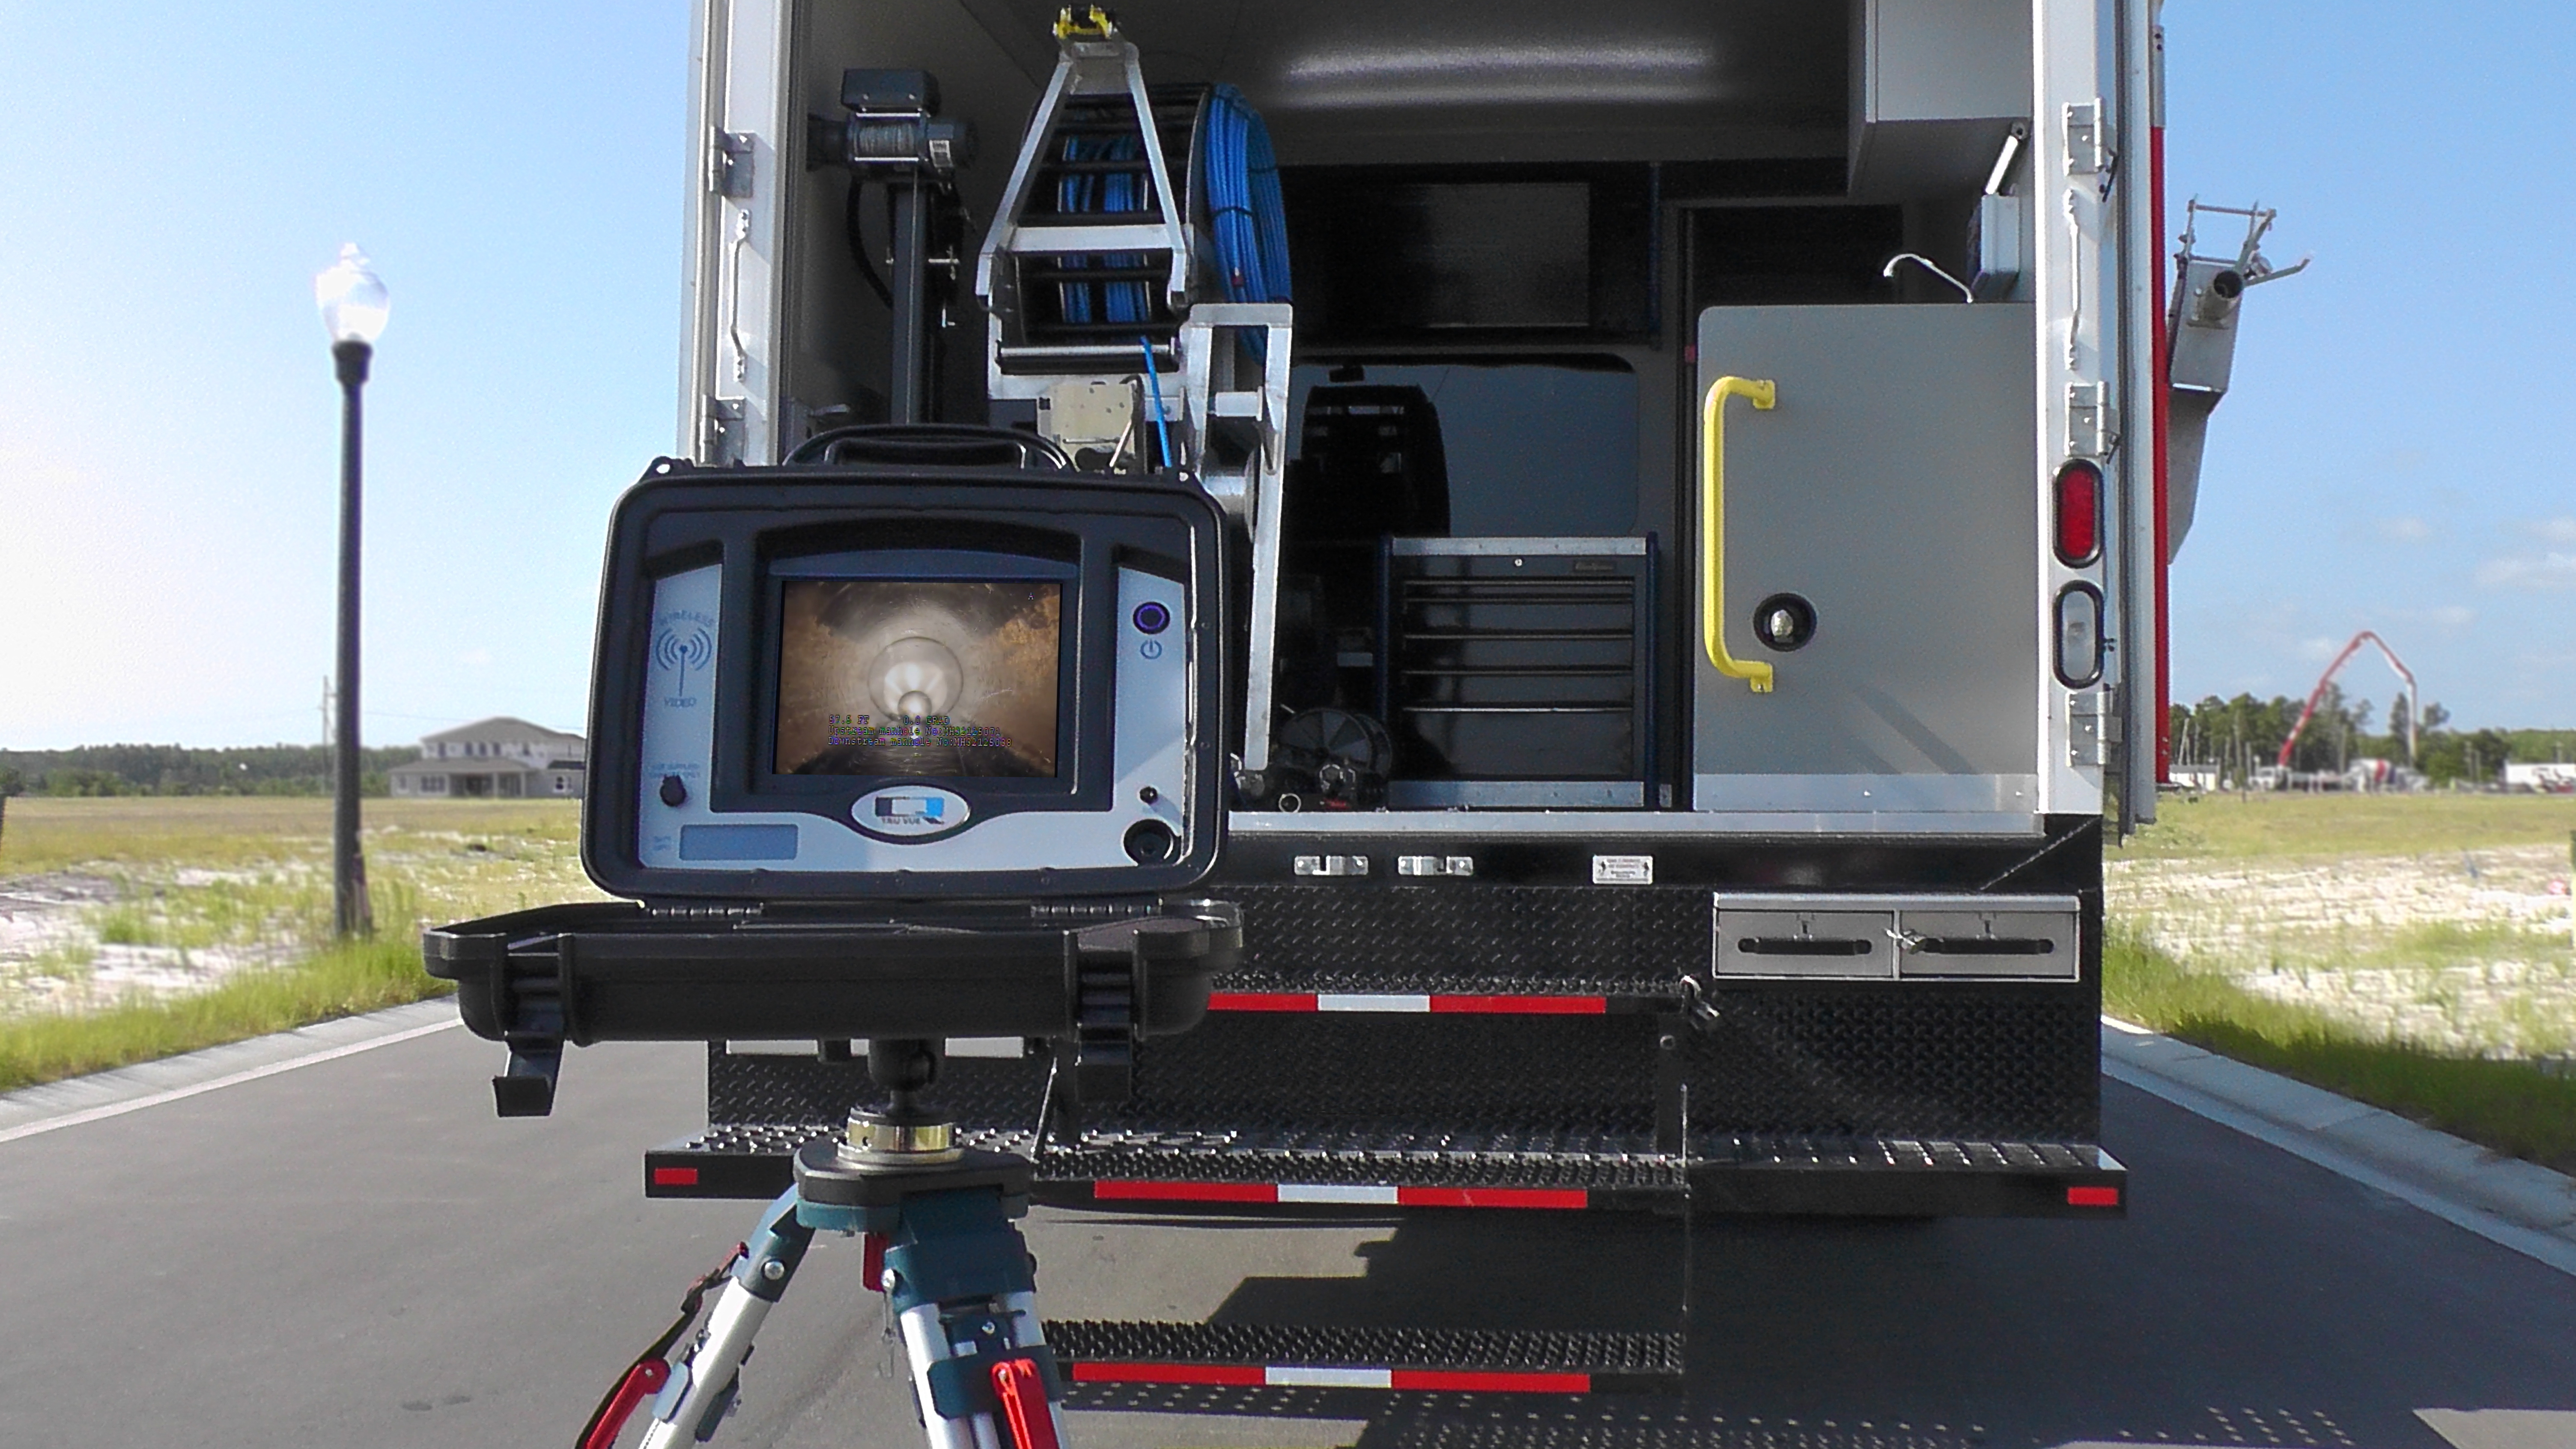 TruVue Video Transmission System